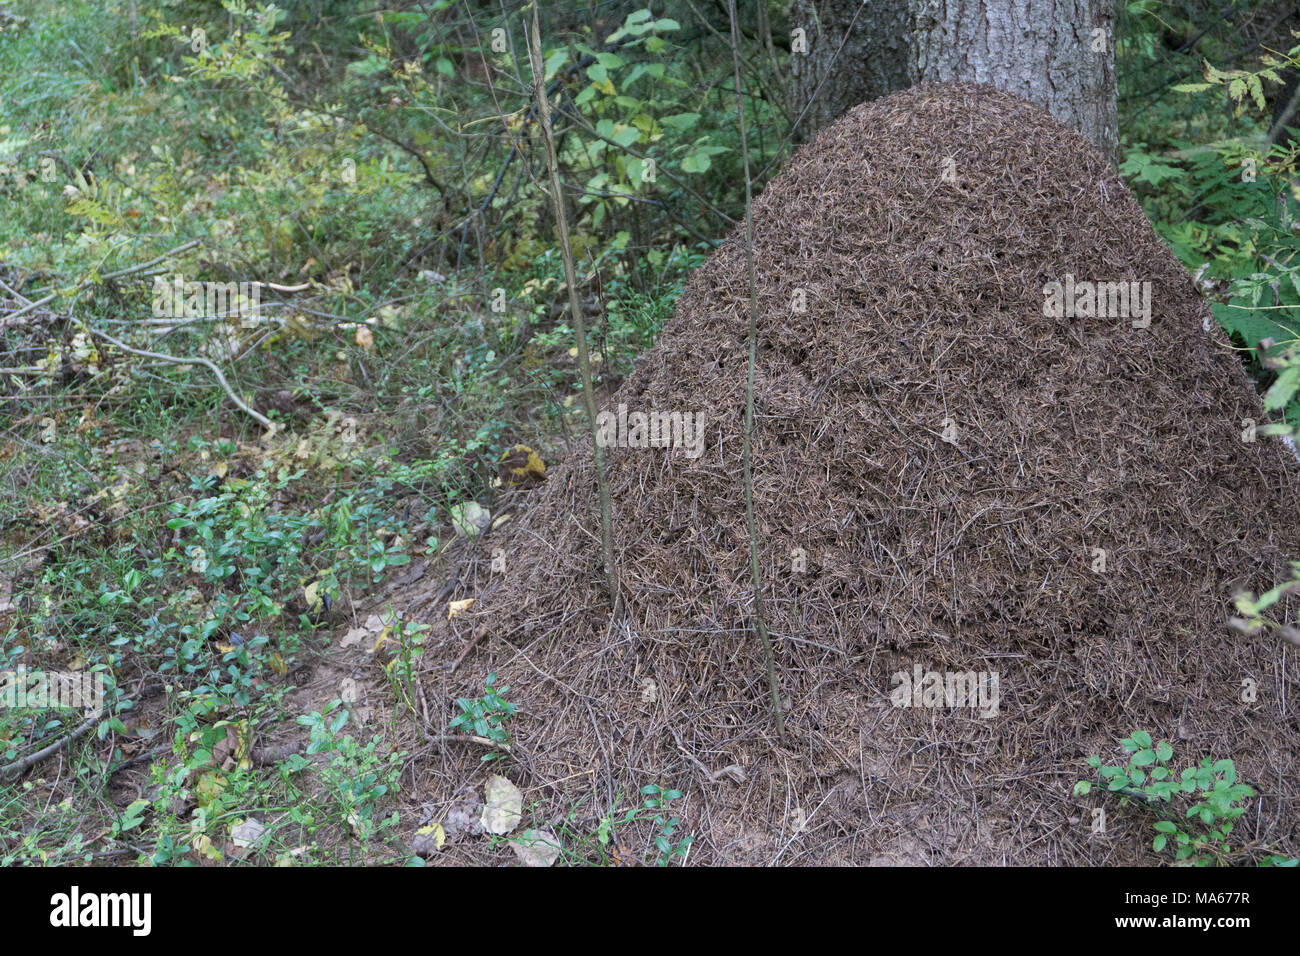 A large anthill in a sunny autumn forest. Ants are preparing for wintering, they warm their dwelling with small dry branches and fallen old pine needl - Stock Image